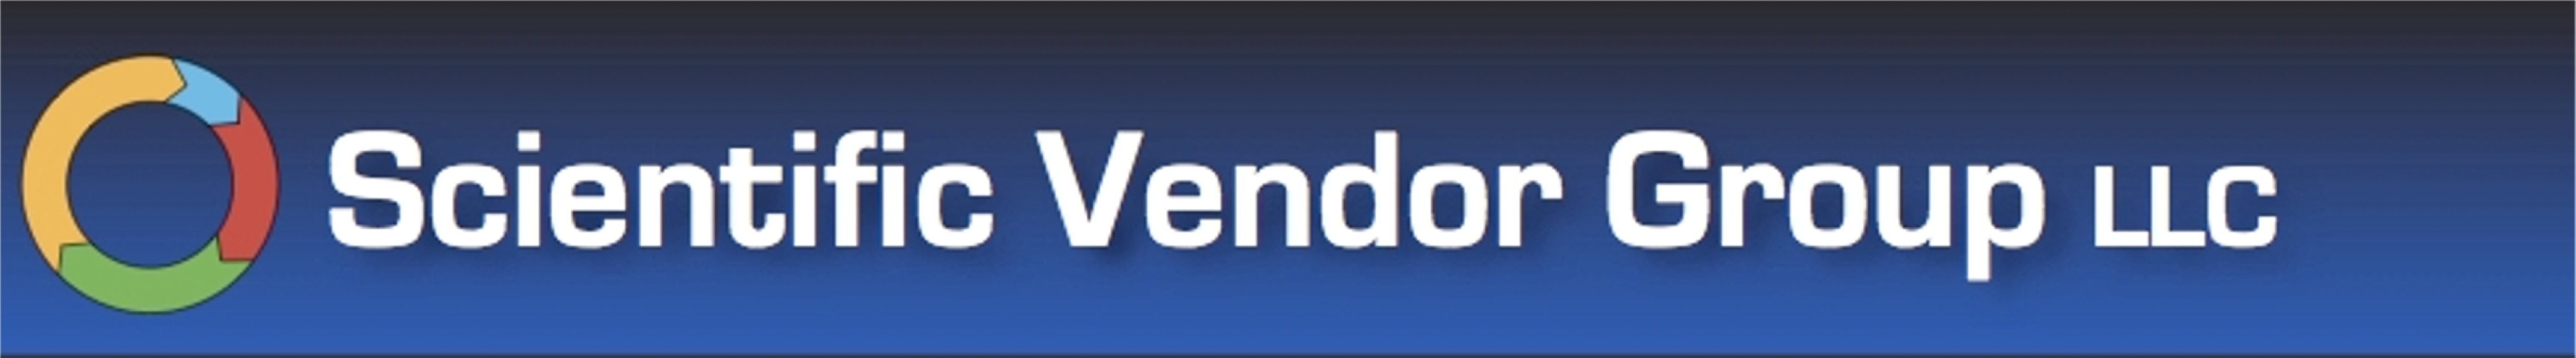 Scientific Vendor Group